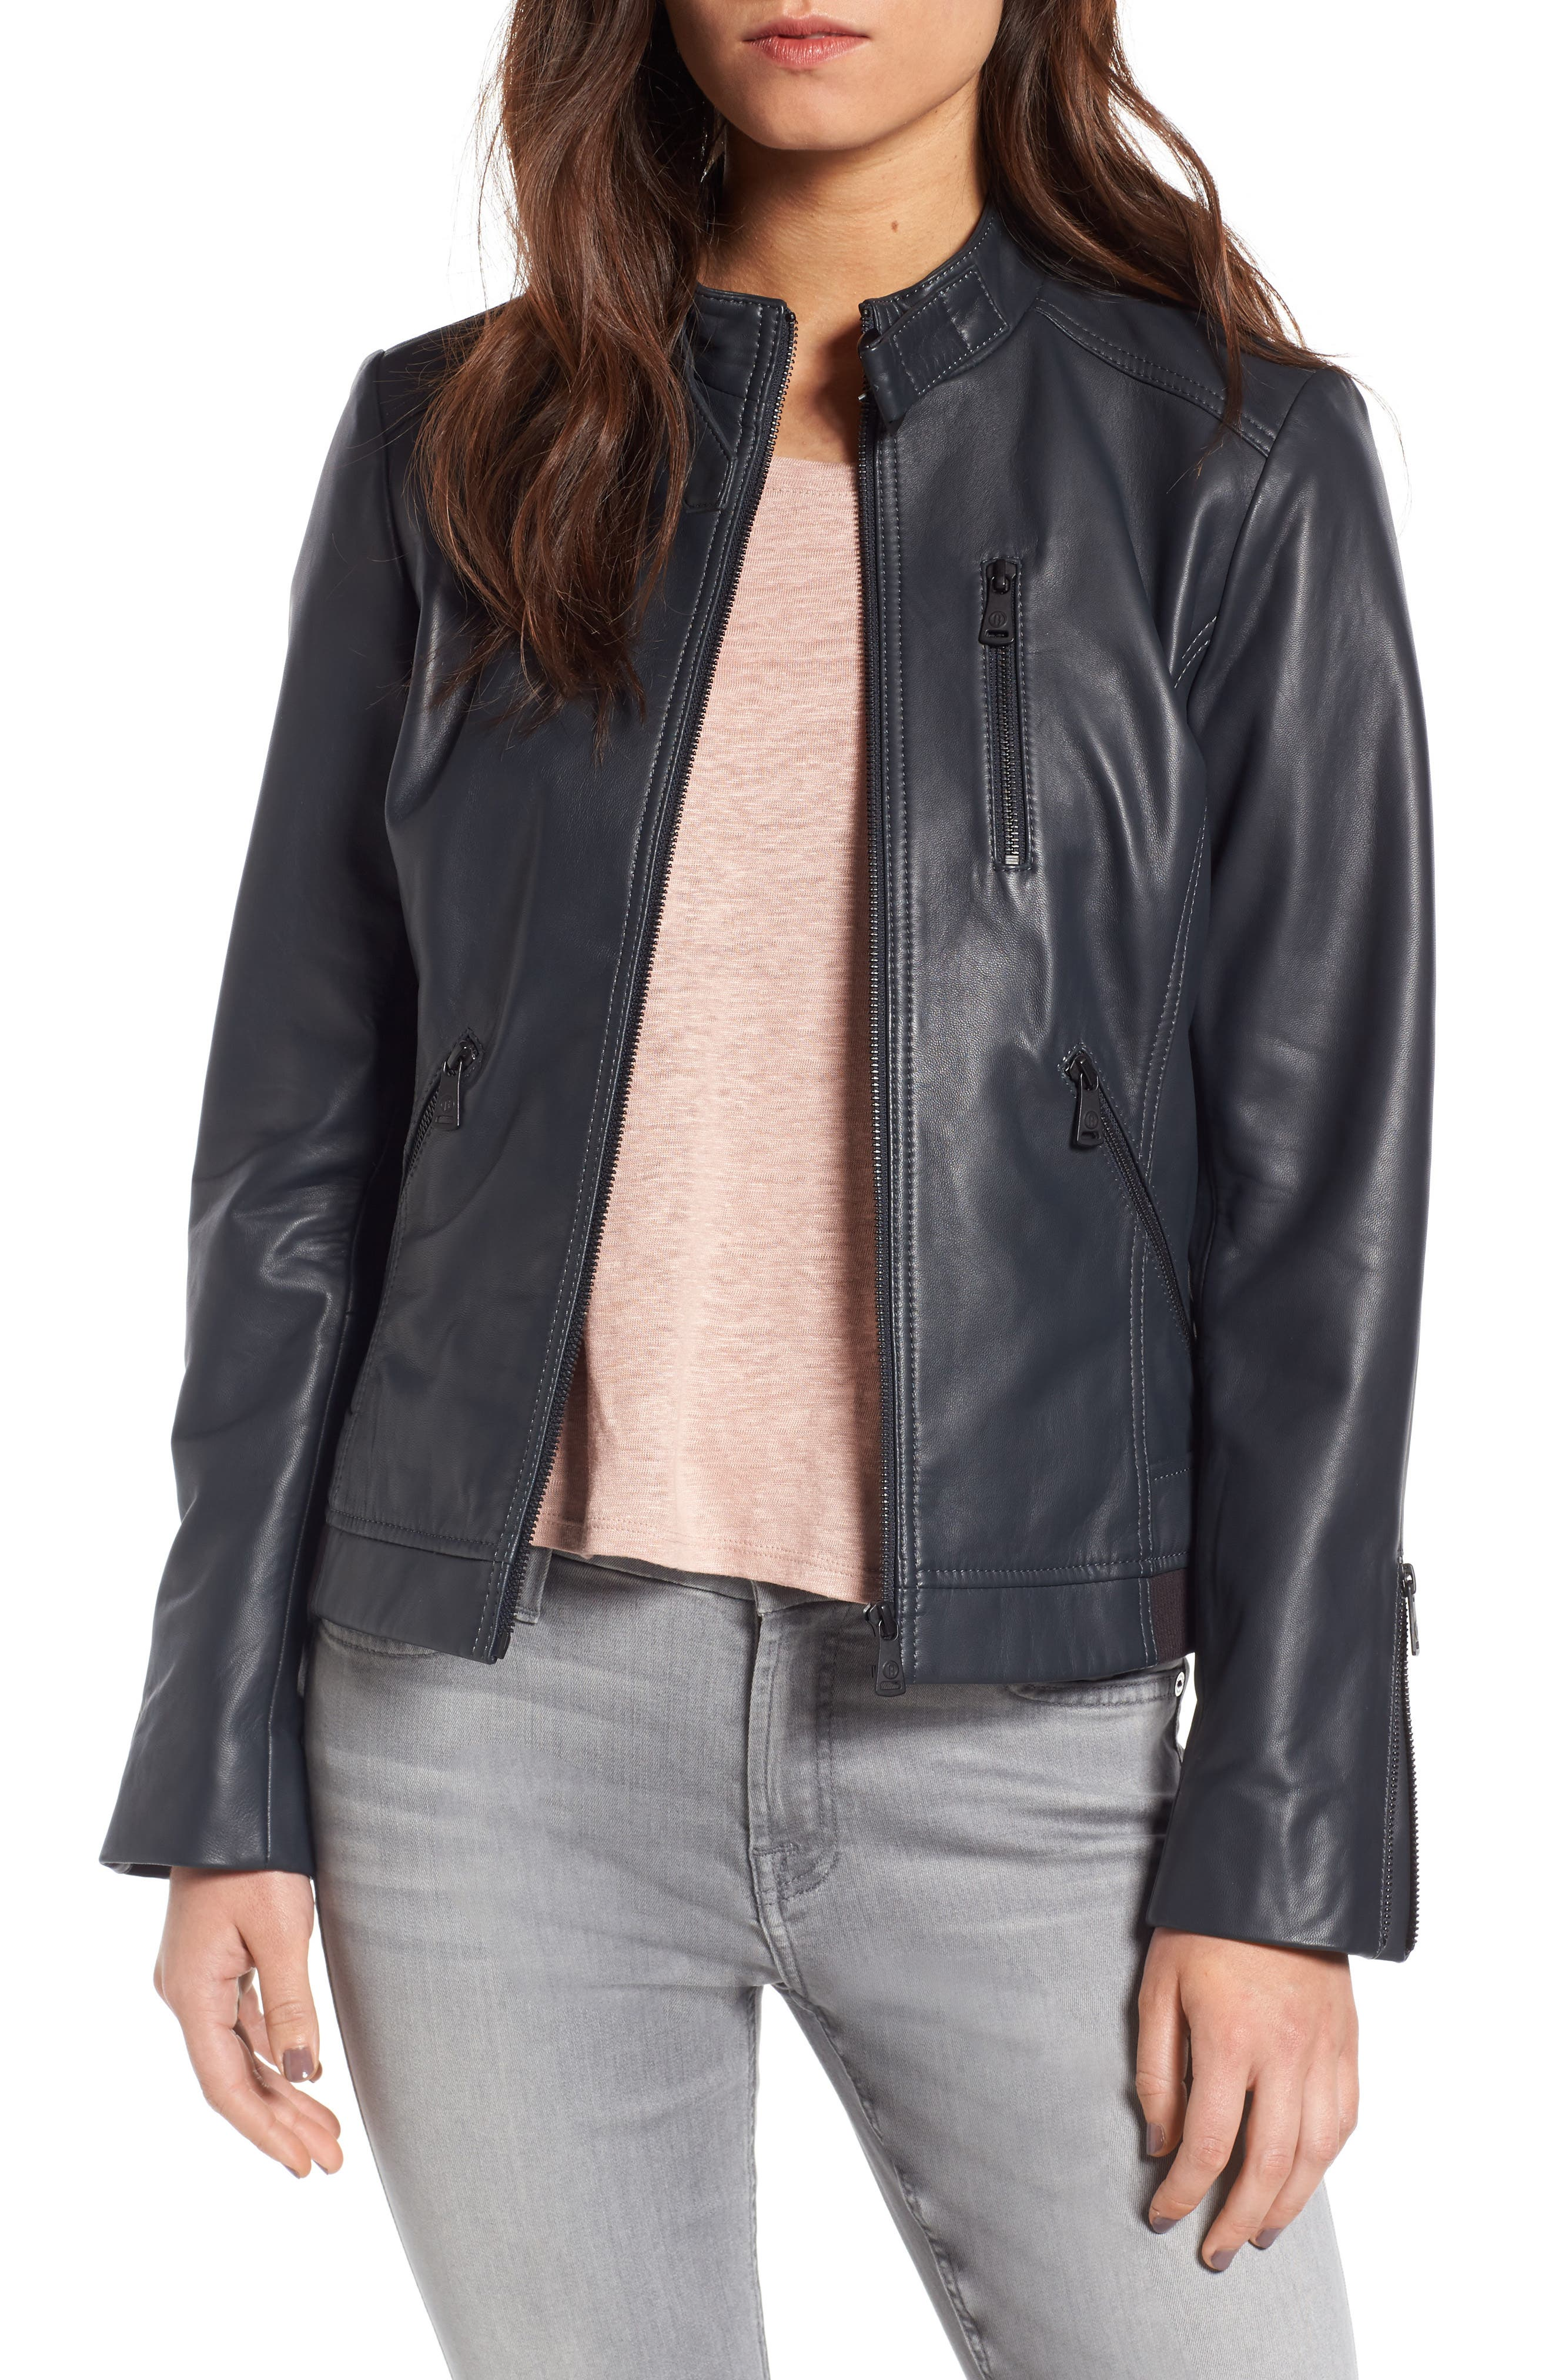 Bernardo Jetta Knit Detail Leather Scuba Jacket (Regular & Petite)